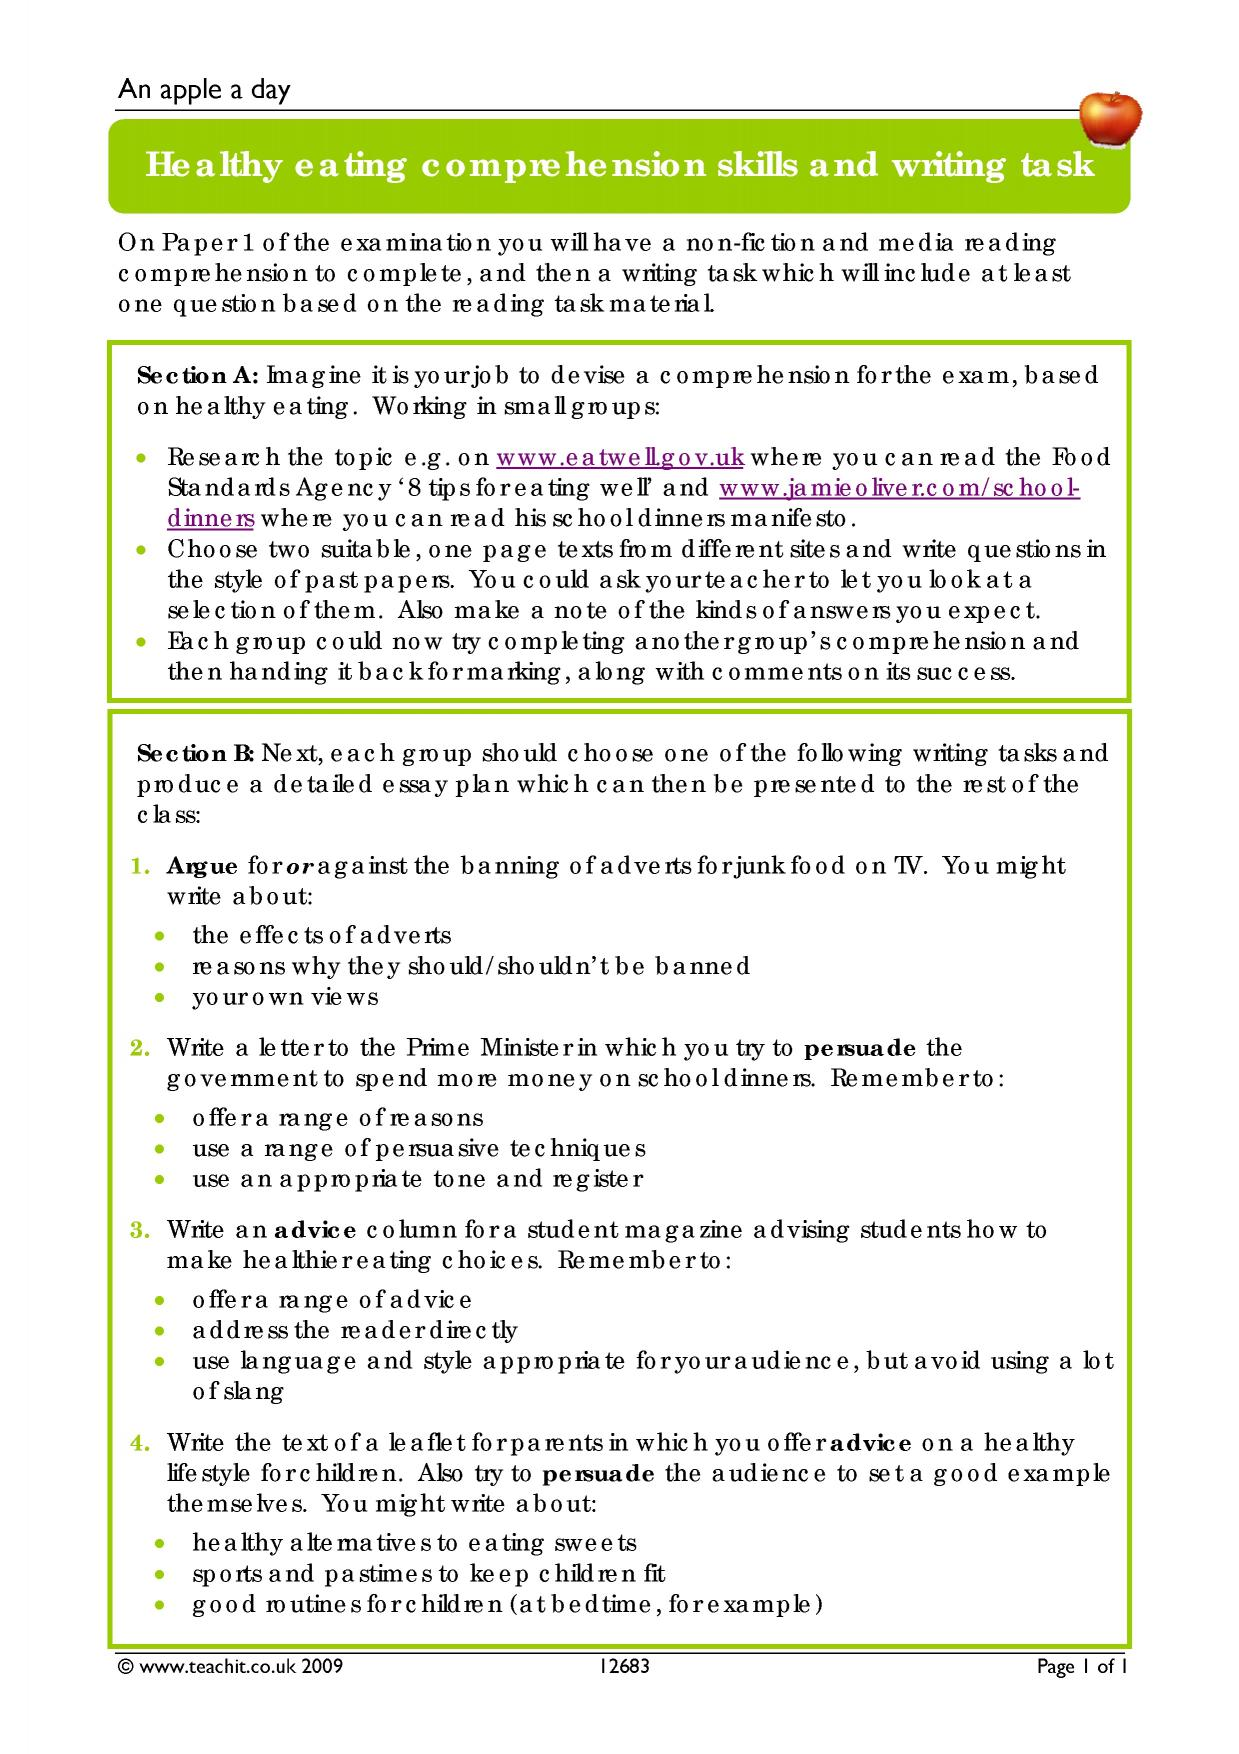 007 X16623 Php Pagespeed Ic Rgoow58ty Food Inc Essay Top Questions Topics Pdf Full